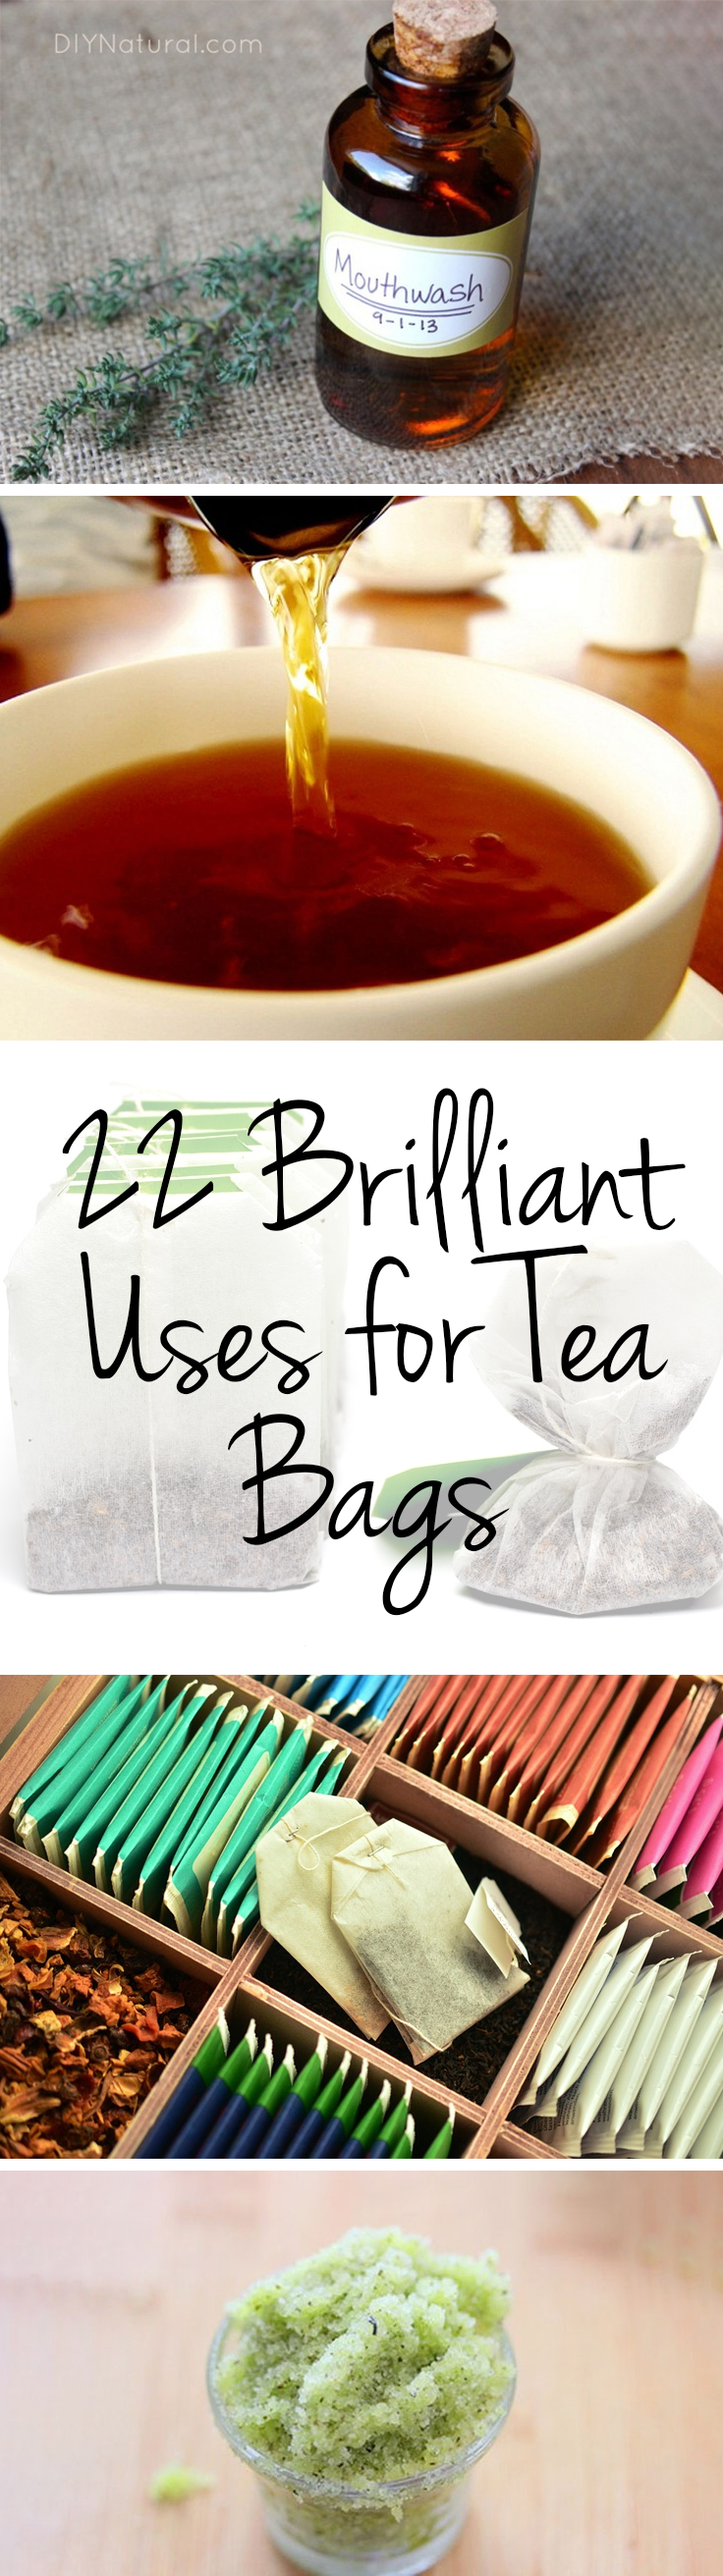 22-brilliant-uses-for-tea-bags